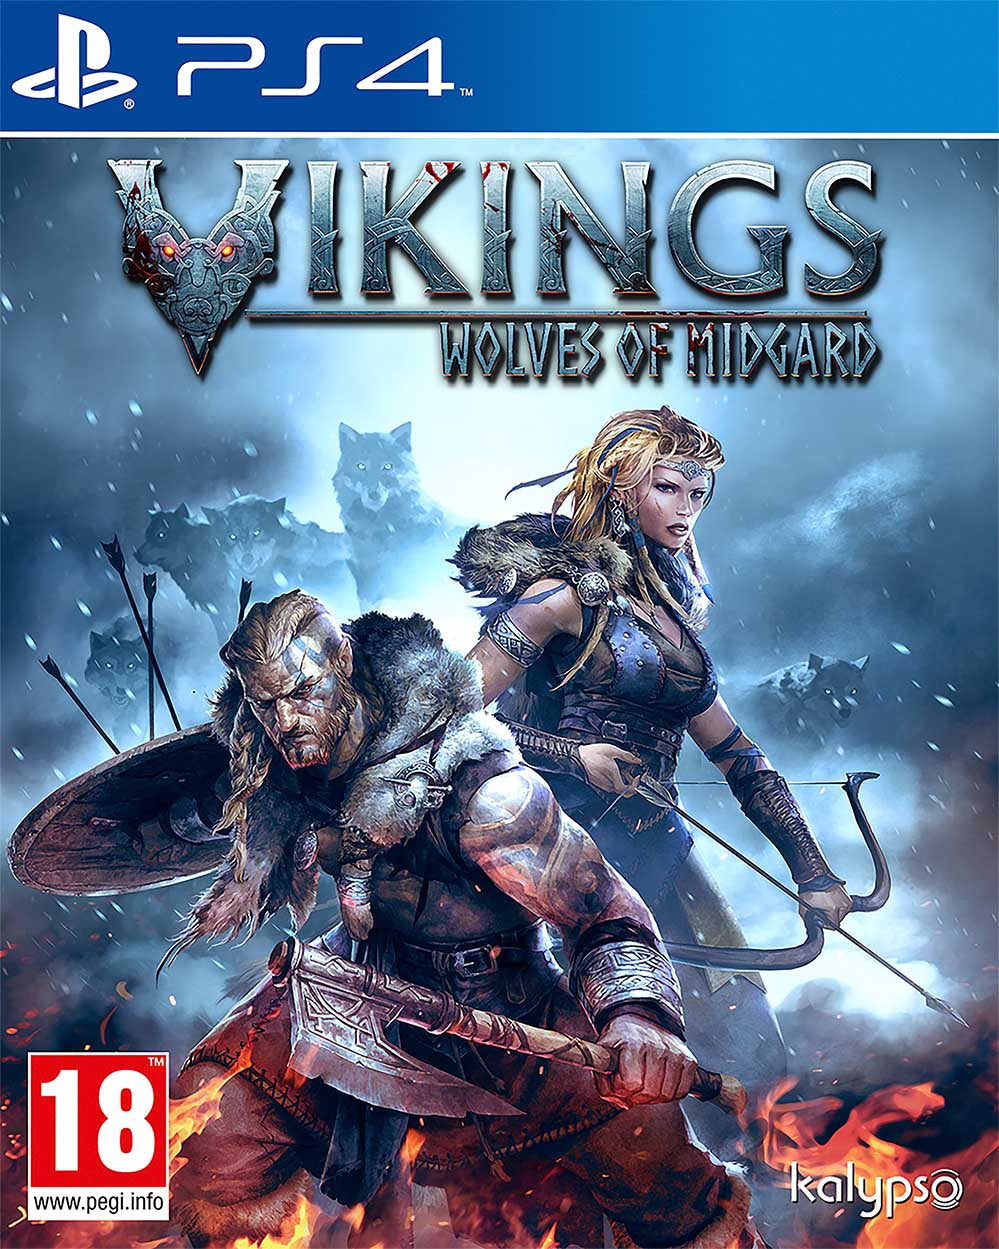 Vikings: Wolves of Midgard - PS4 - Video Games by Kalypso Media The Chelsea Gamer